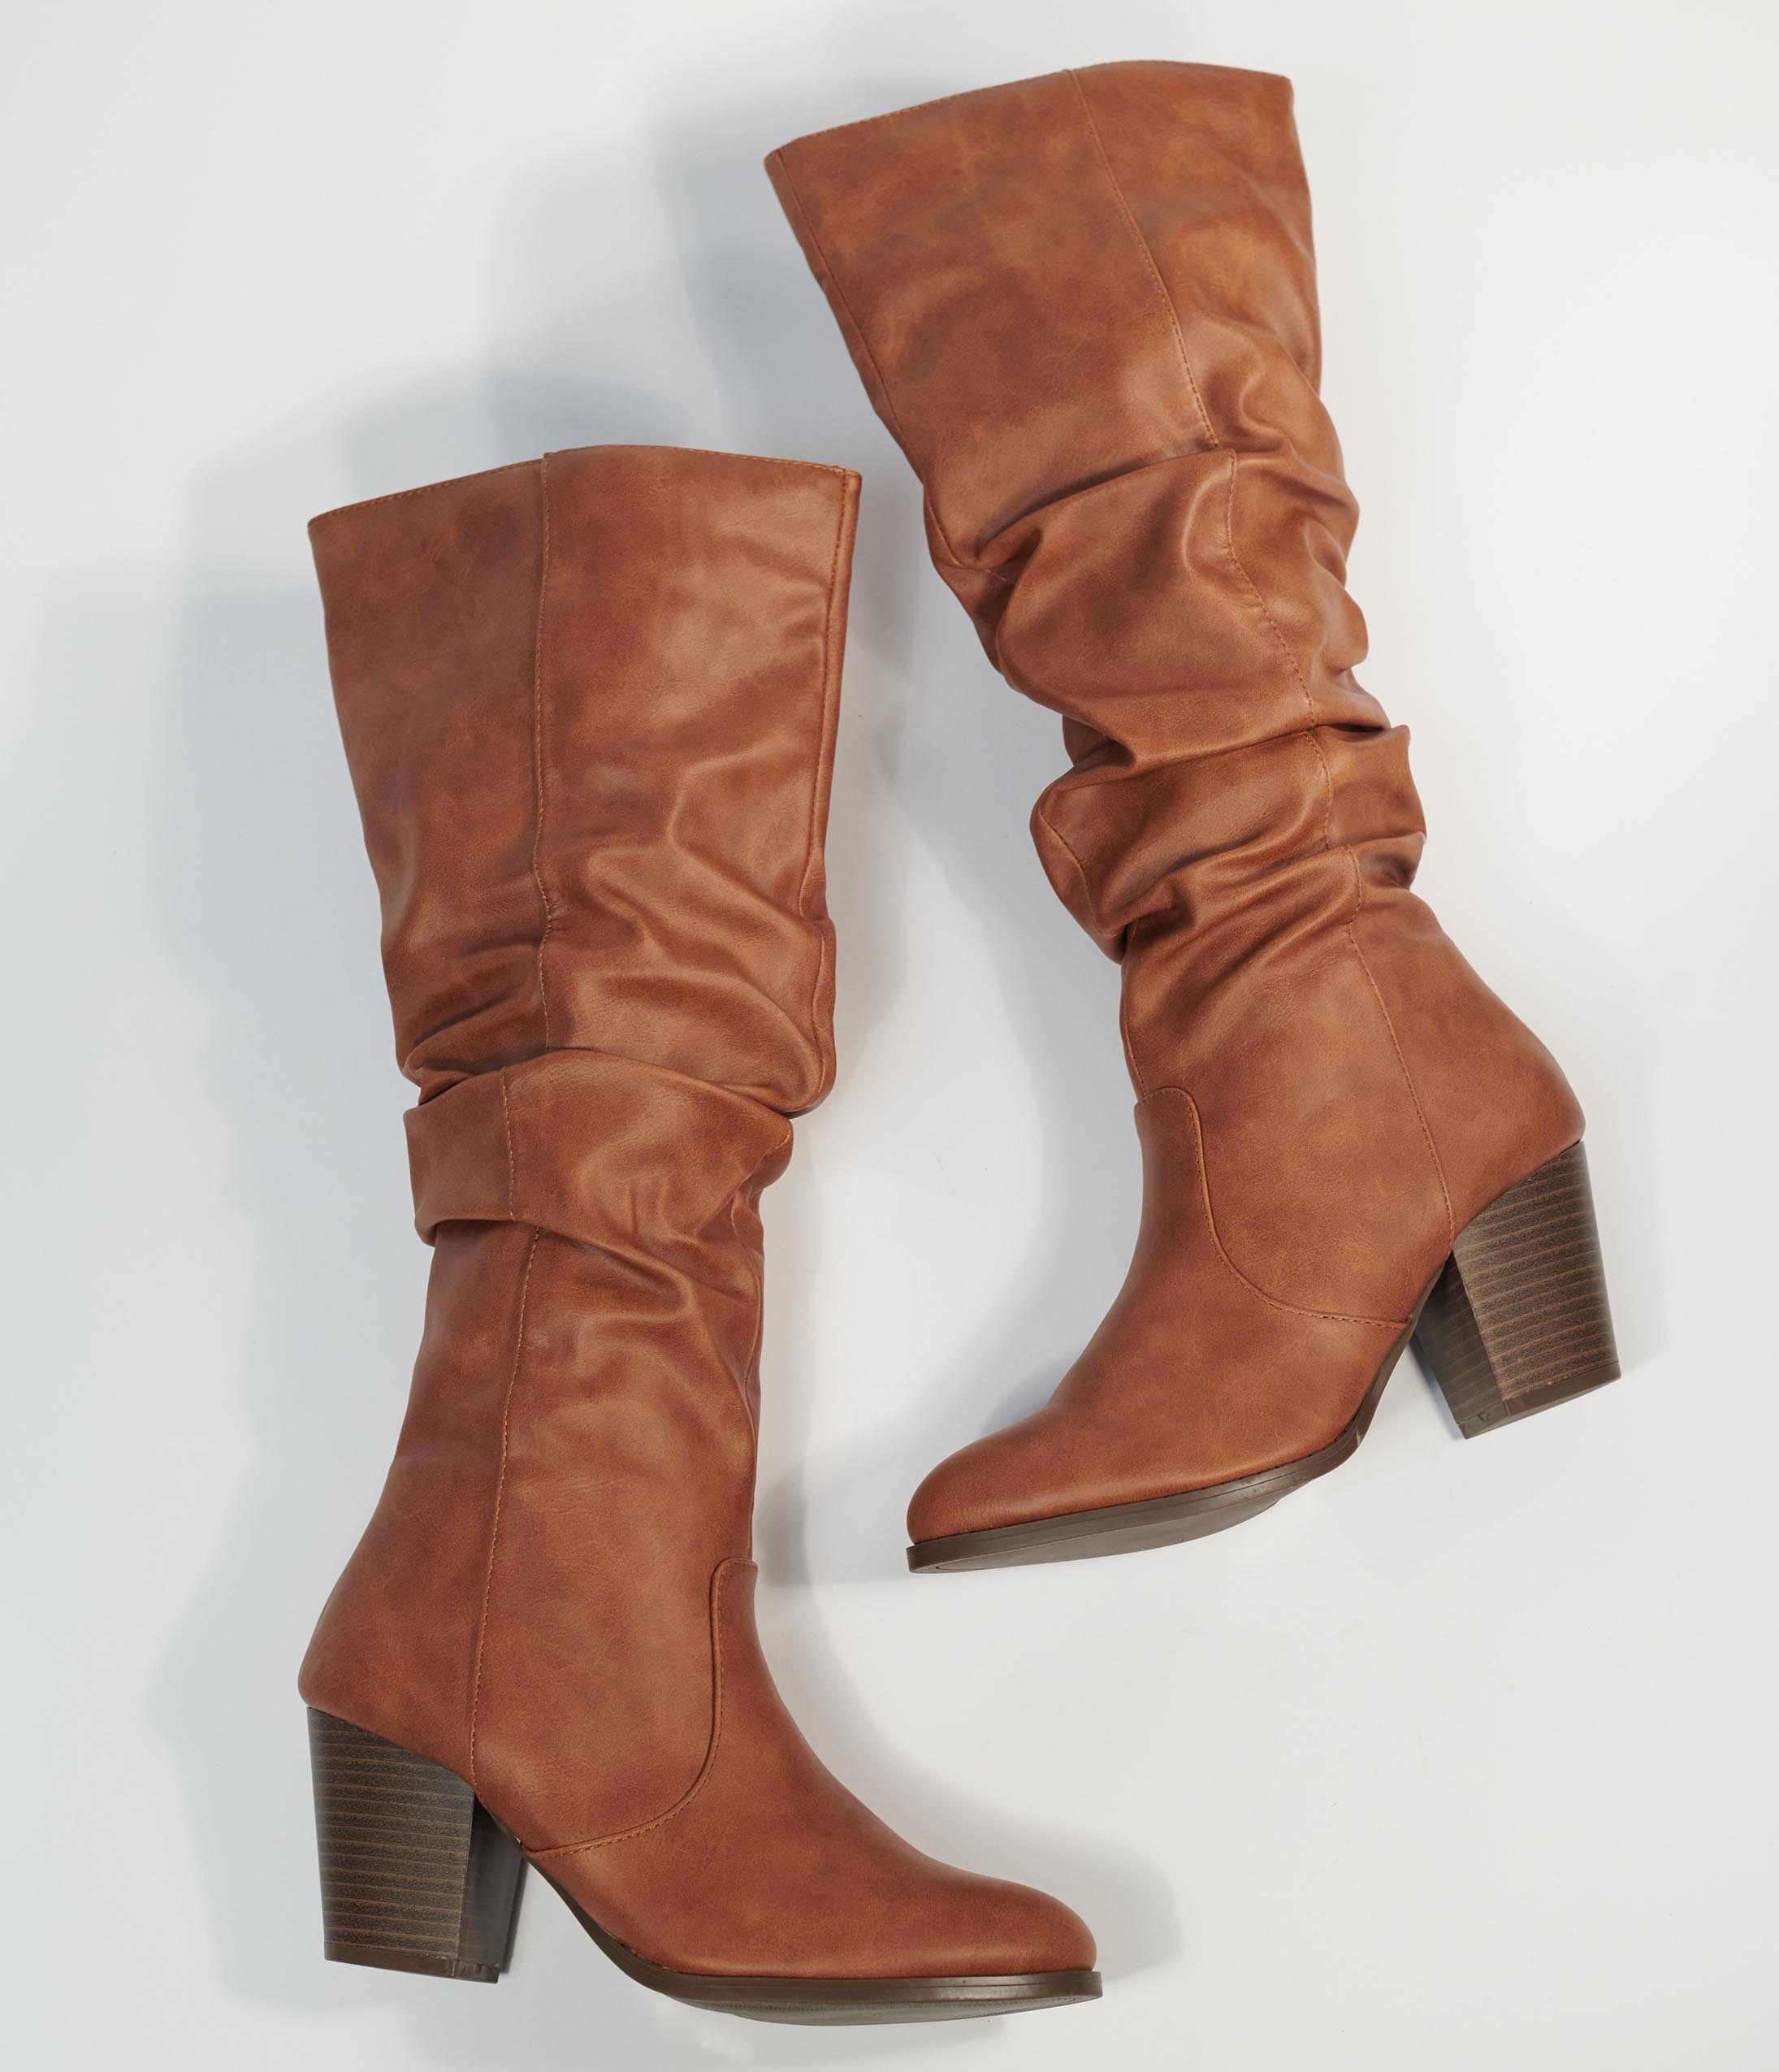 80s Shoes, Sneakers, Jelly flats  1980s Shoes Brown Leatherette Slouchy Knee High Boots $62.00 AT vintagedancer.com